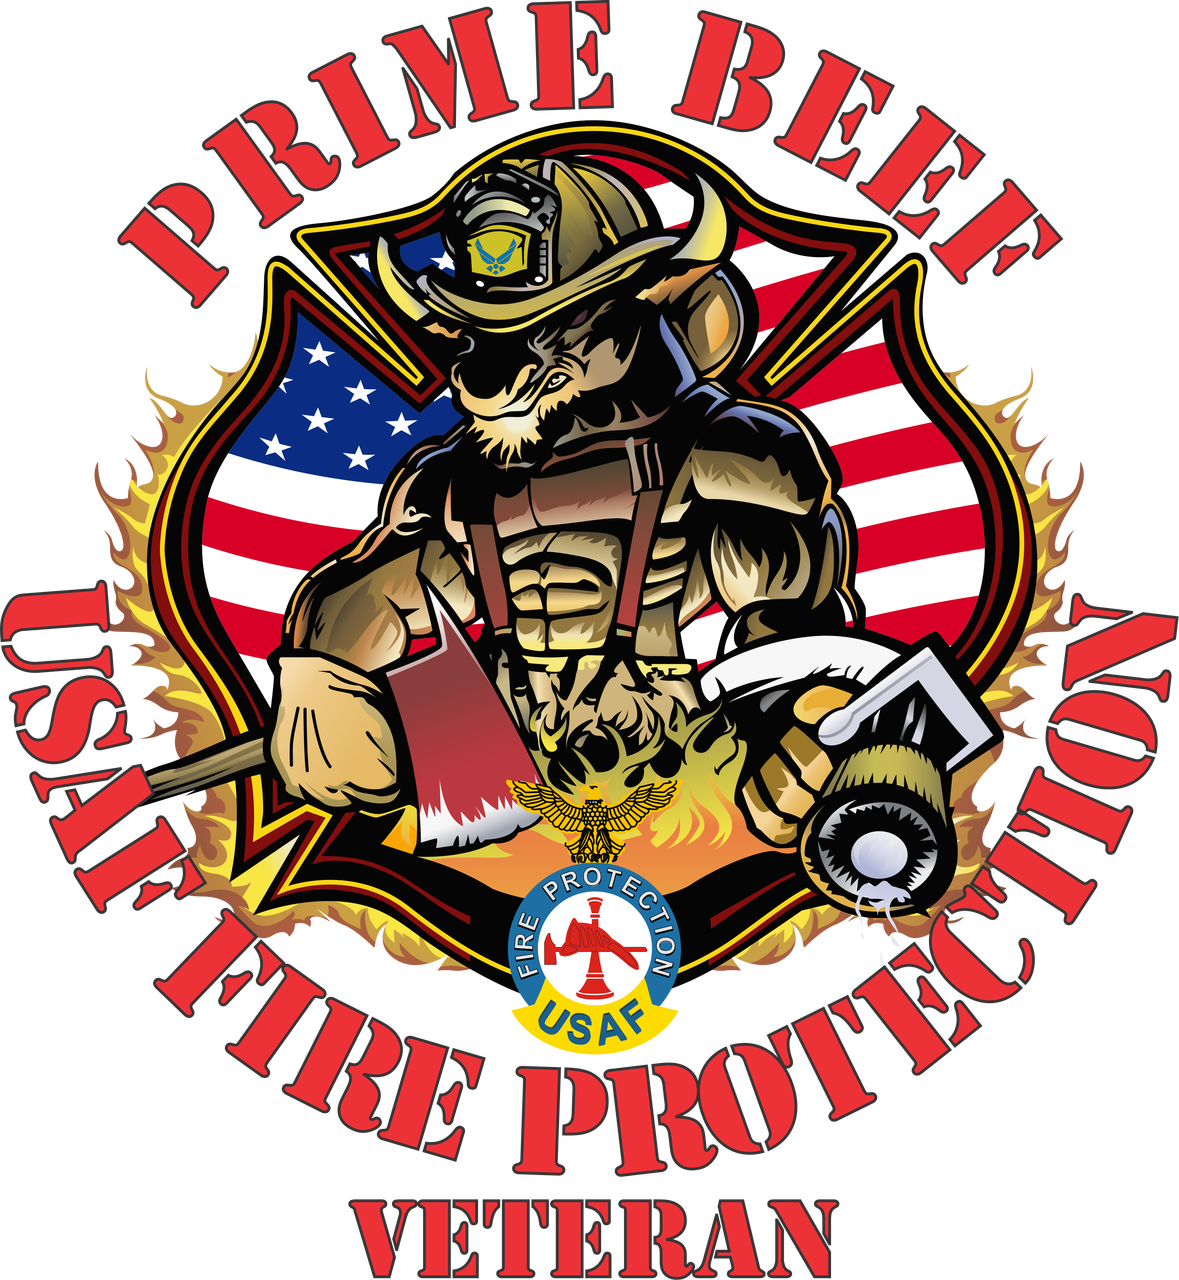 Pin By Tom Nyeholt On Tattoos Fire Fighter Tattoos Fire Service